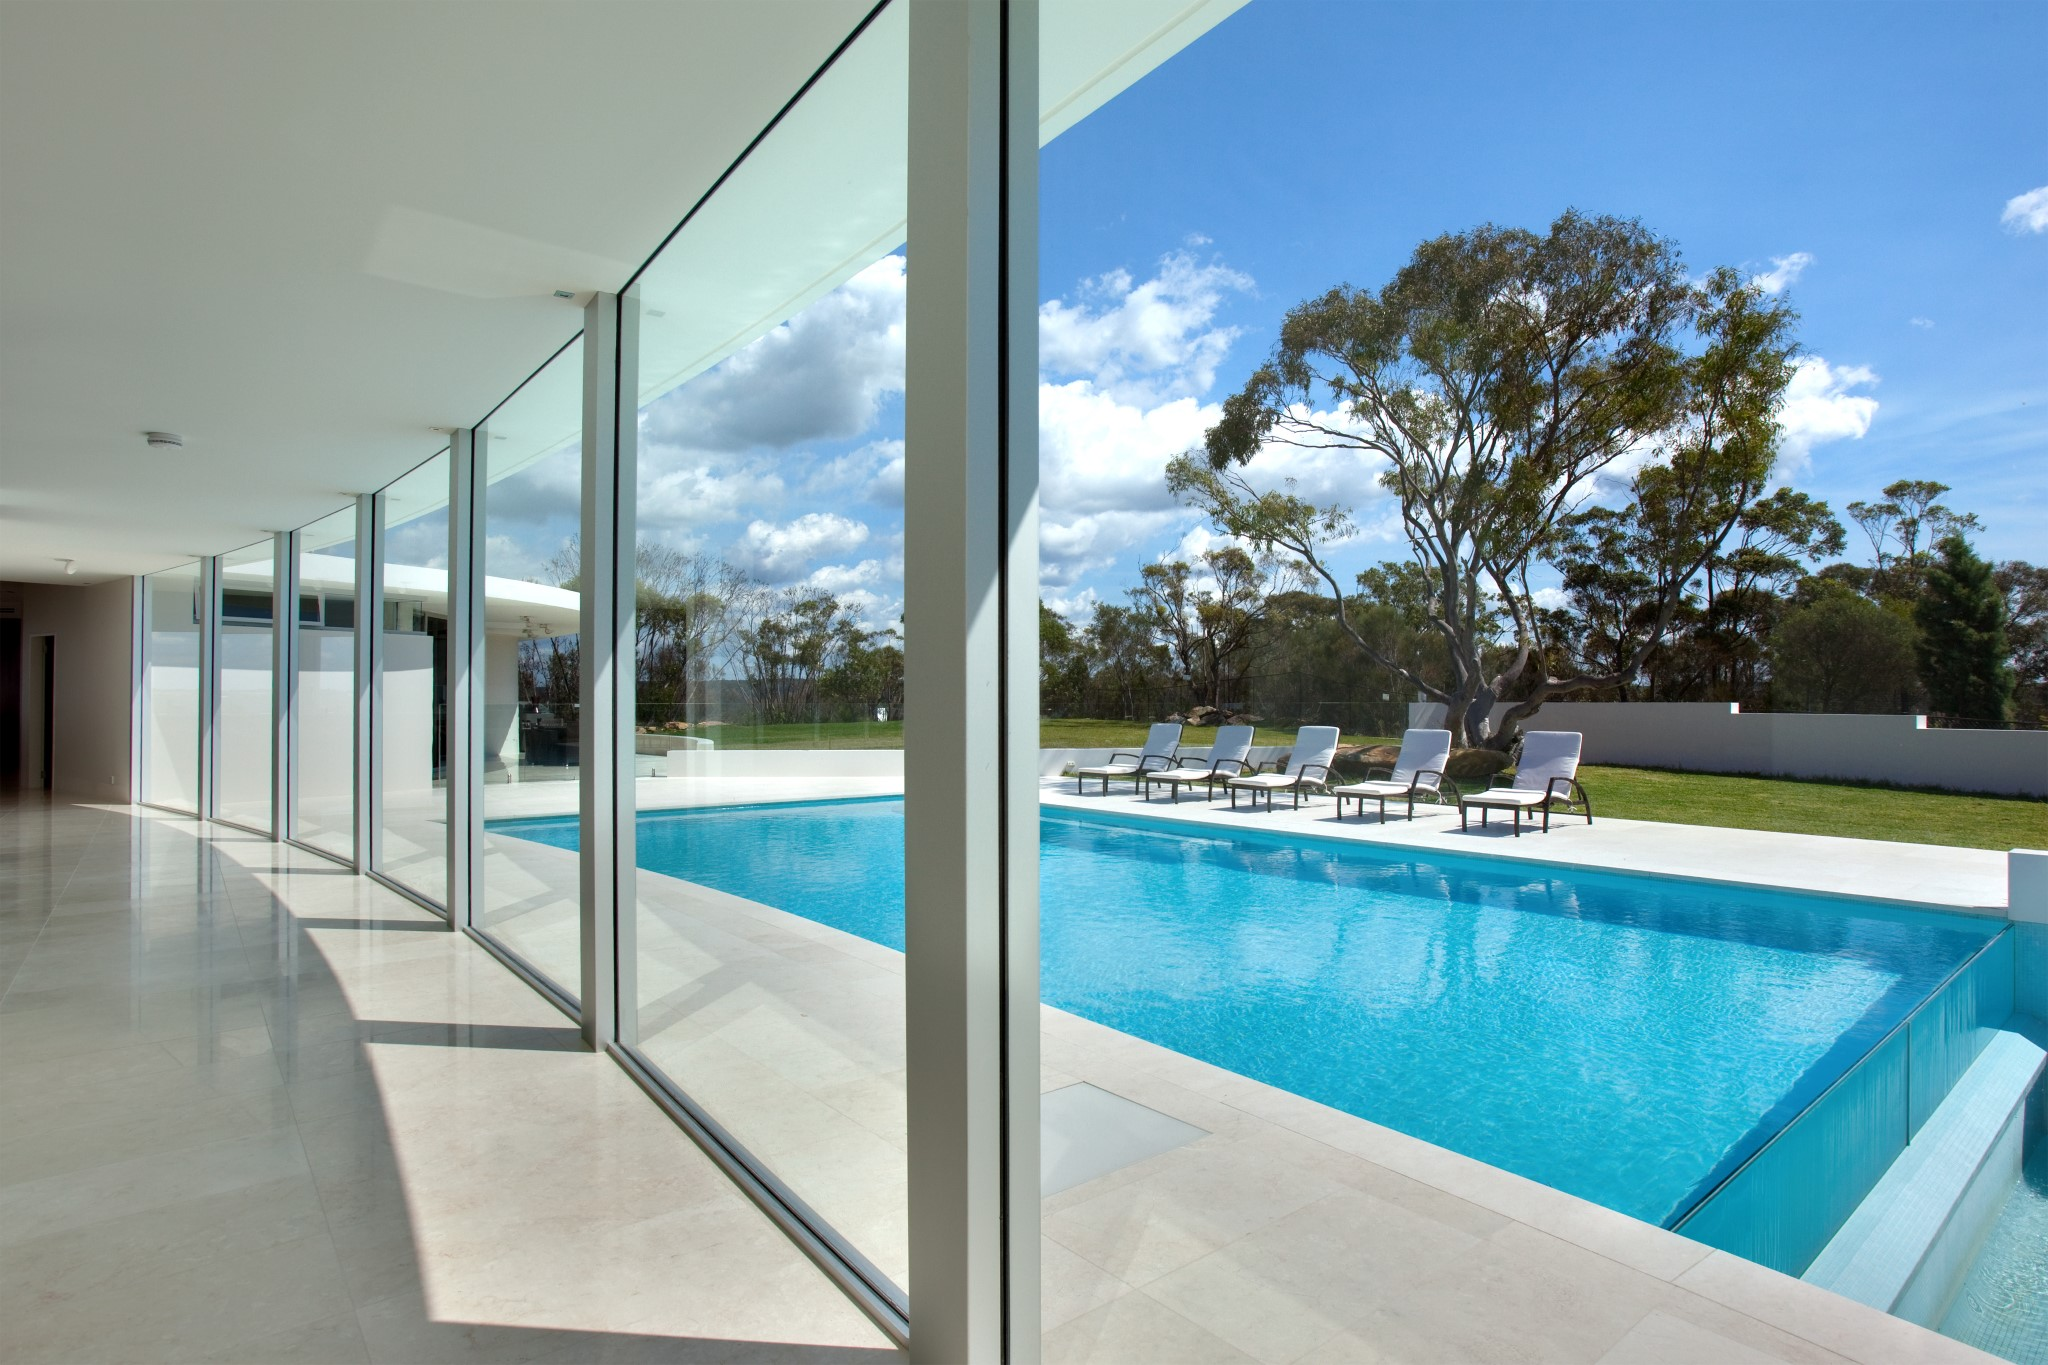 Private swimming pool in a backyard of a luxurious house in Elanora Heights